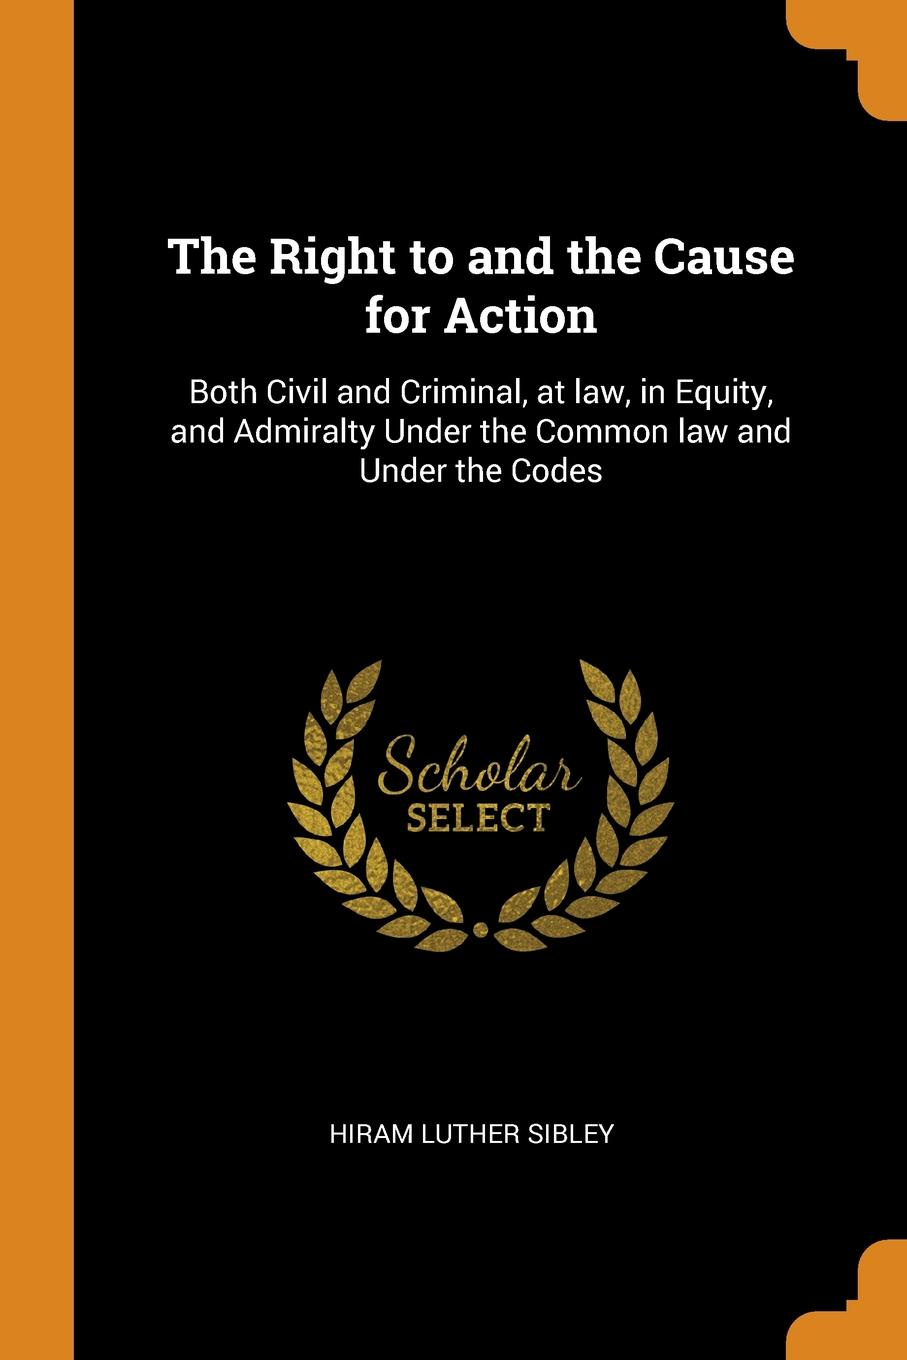 Hiram Luther Sibley The Right to and the Cause for Action. Both Civil and Criminal, at law, in Equity, and Admiralty Under the Common law and Under the Codes